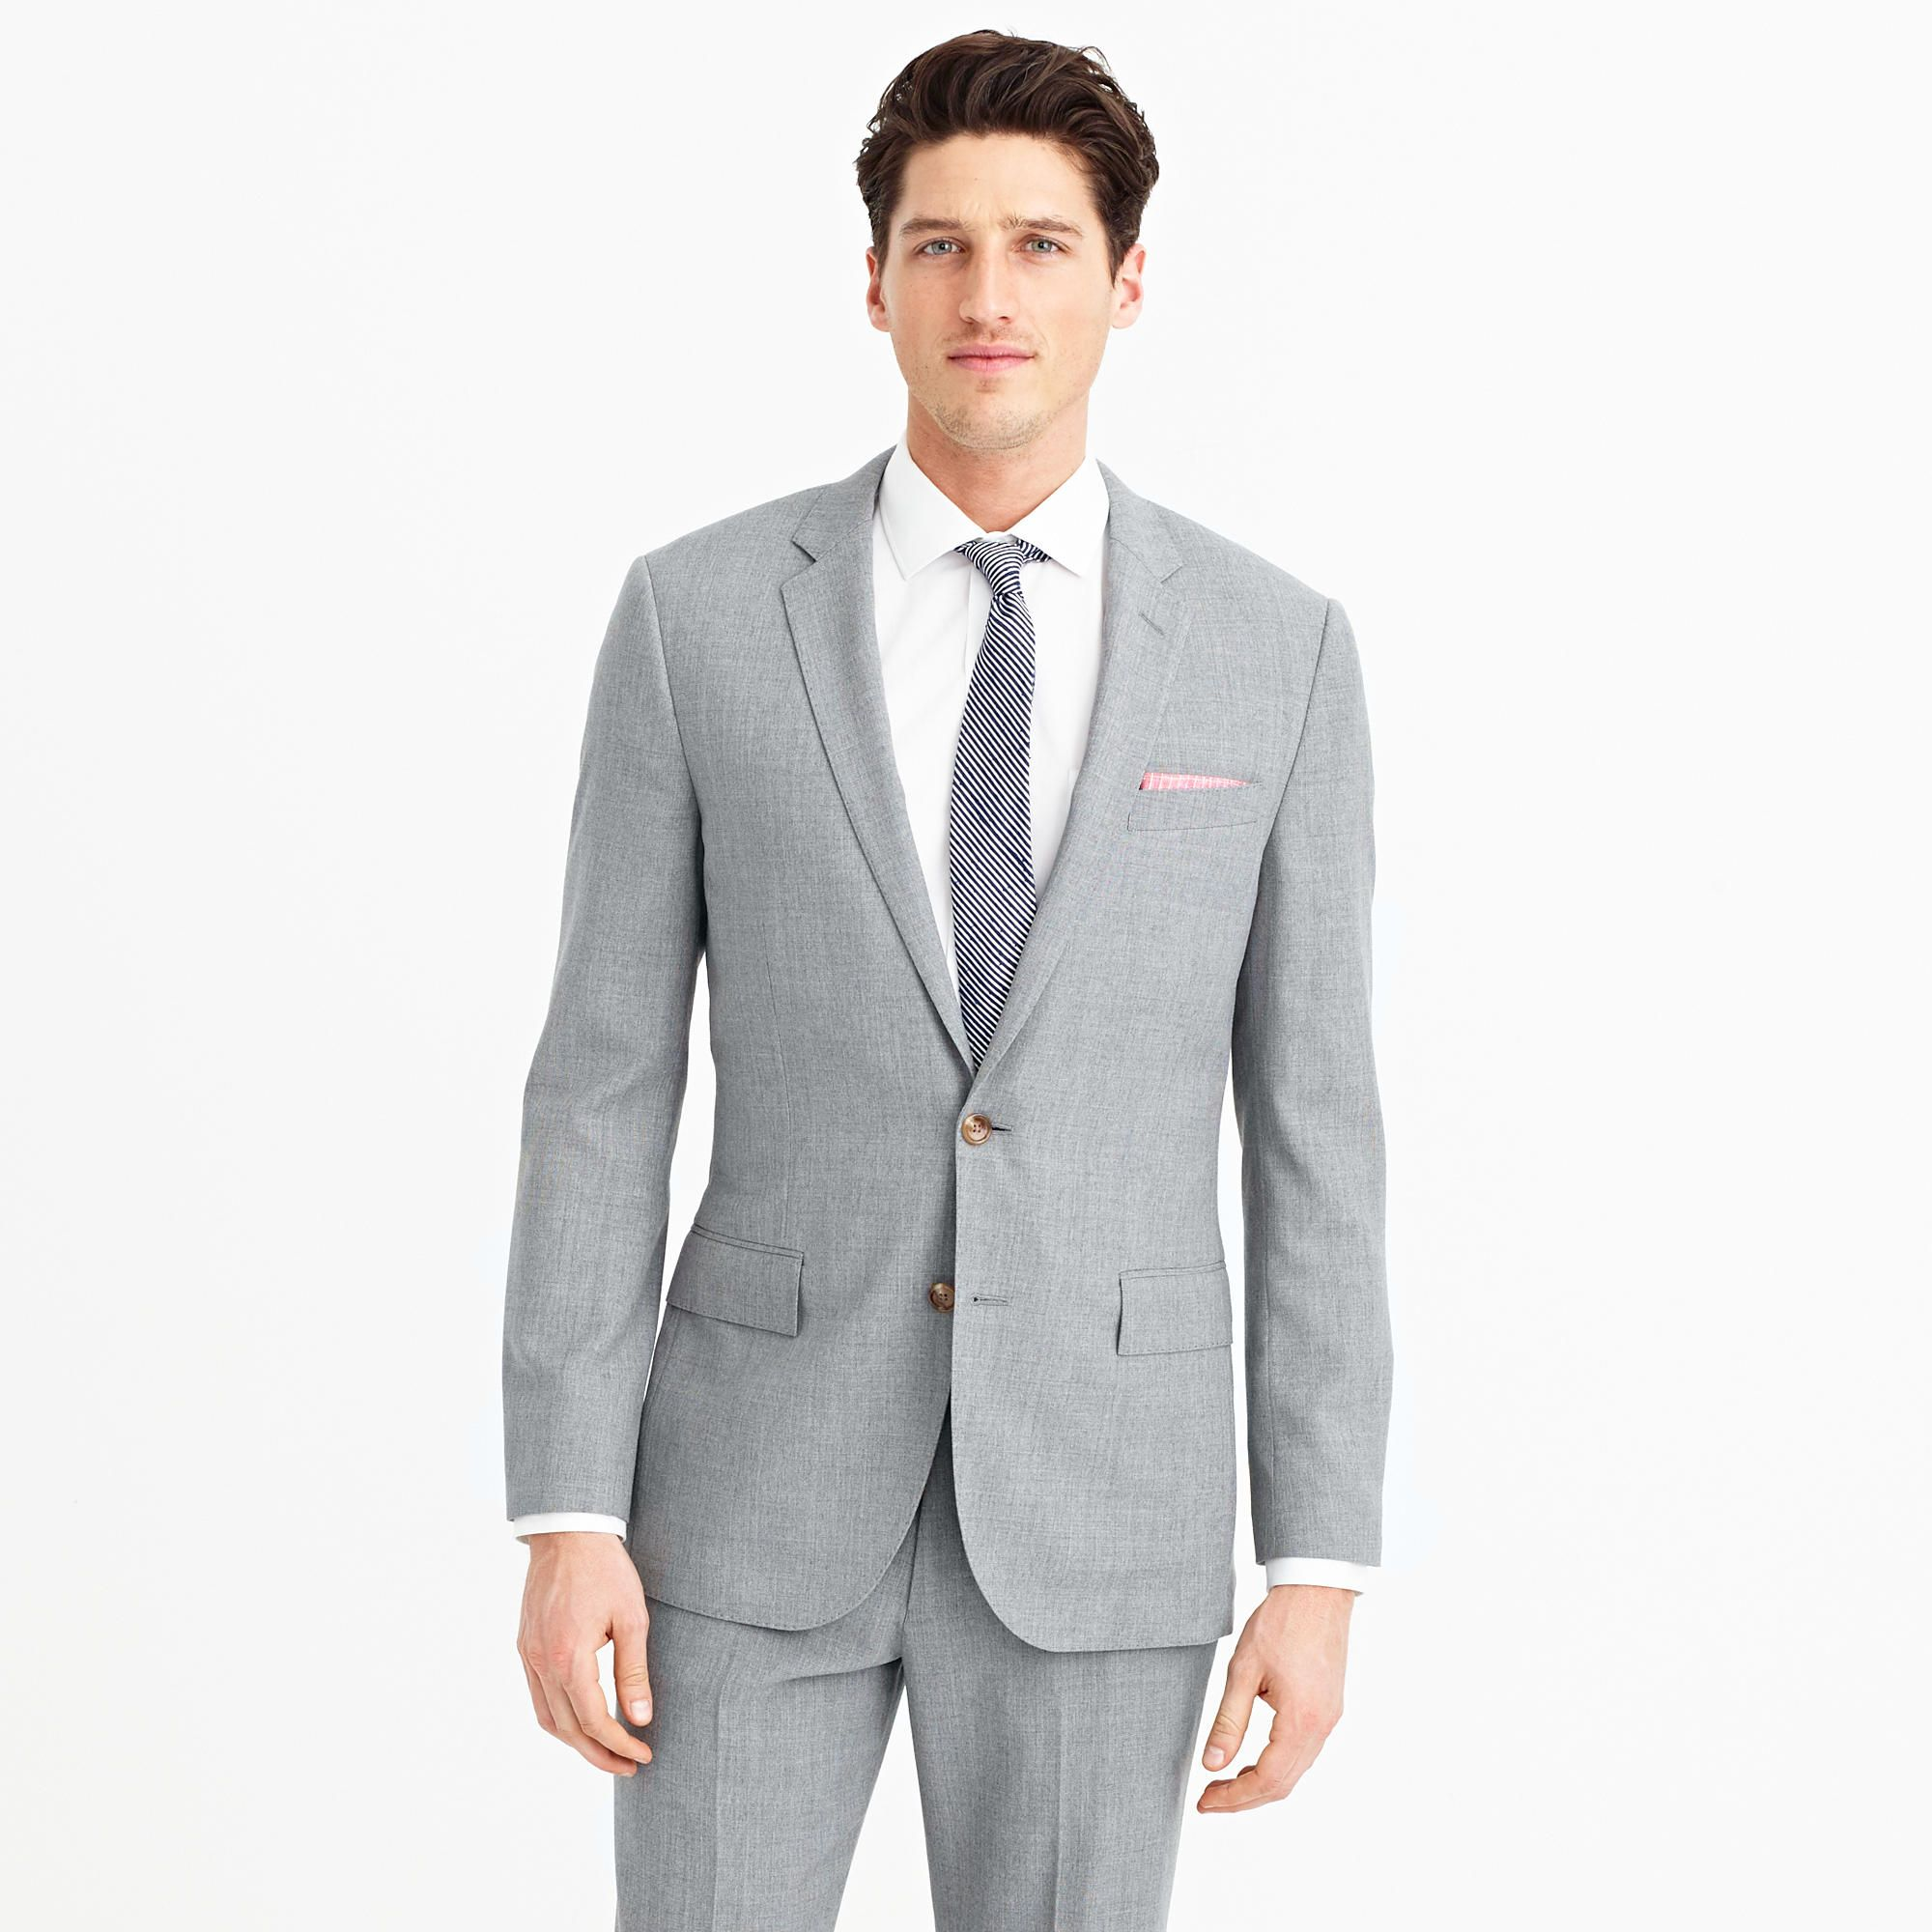 Ludlow Traveler suit jacket in Italian wool : suiting | J.Crew ...